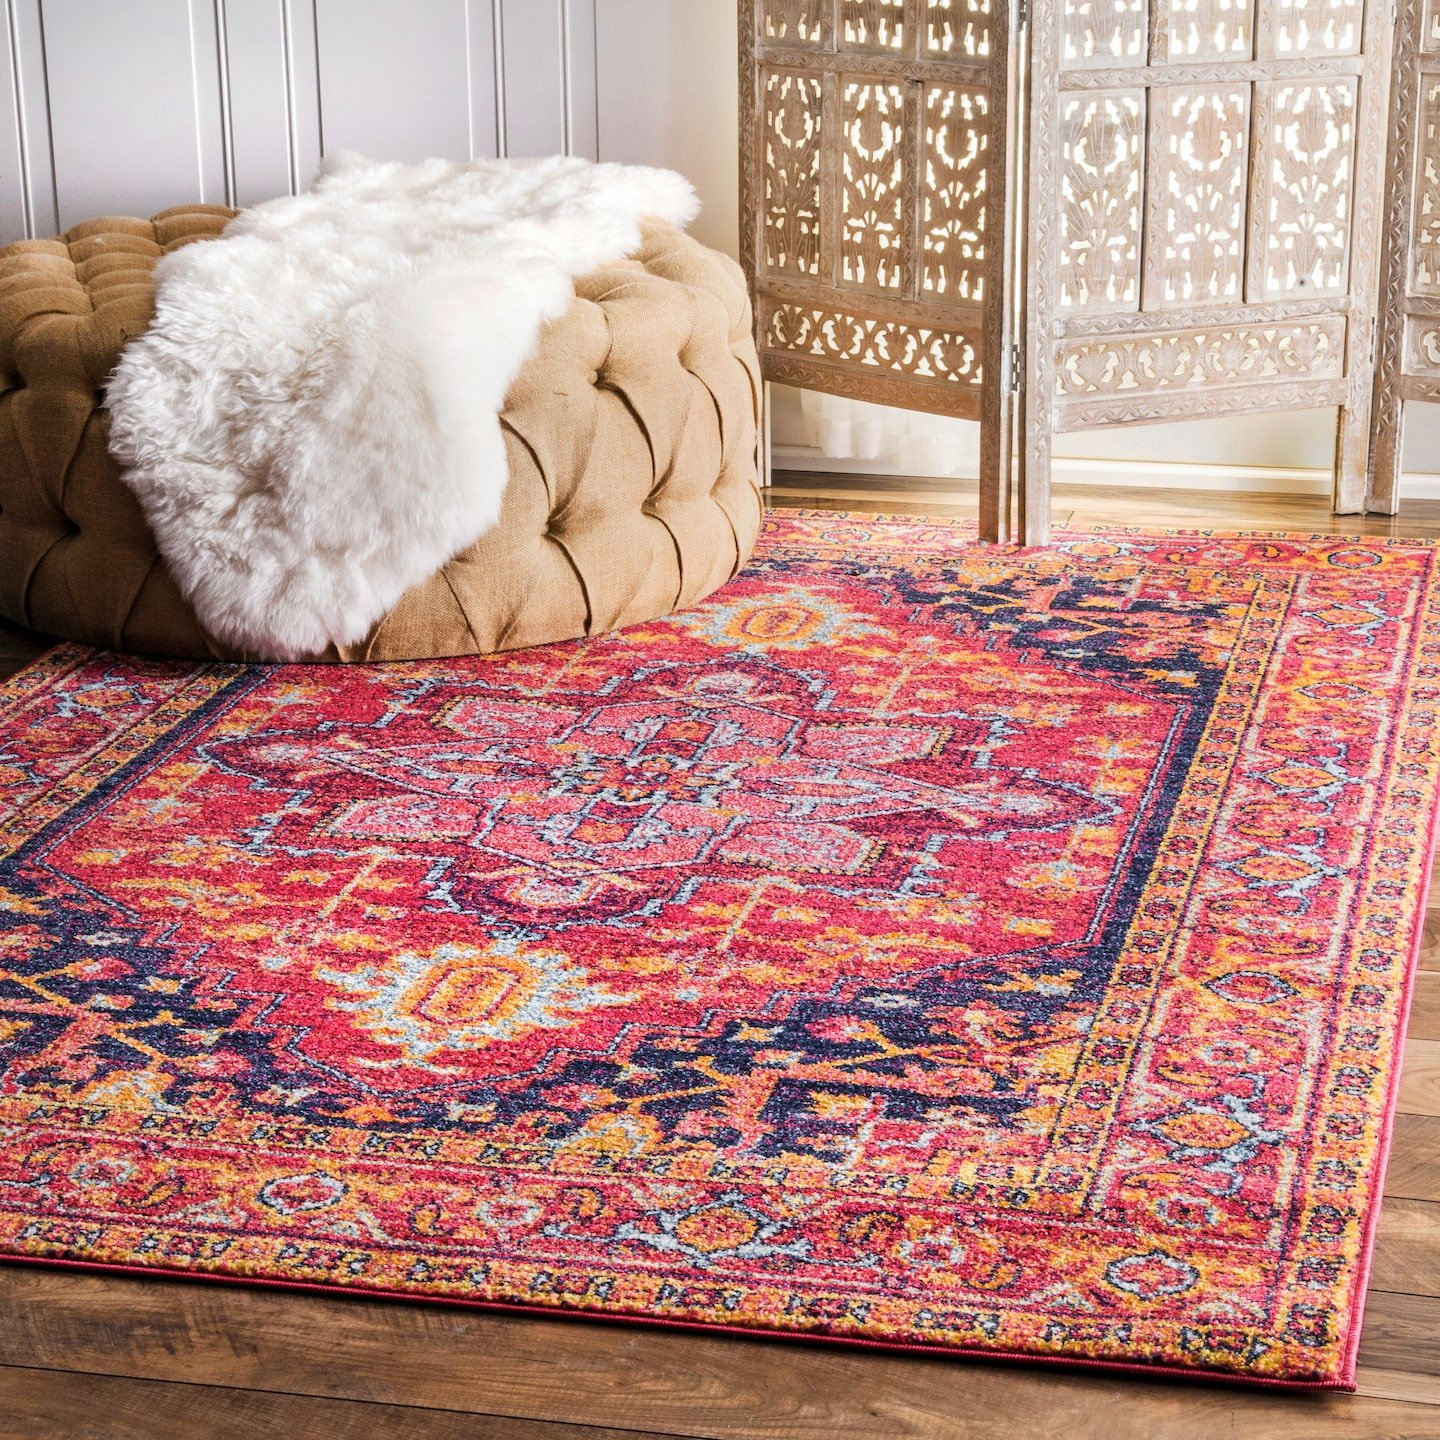 nuLOOM RZBD32A Pink Fancy Persian Vonda Area Rug, 3' x 5', Pink